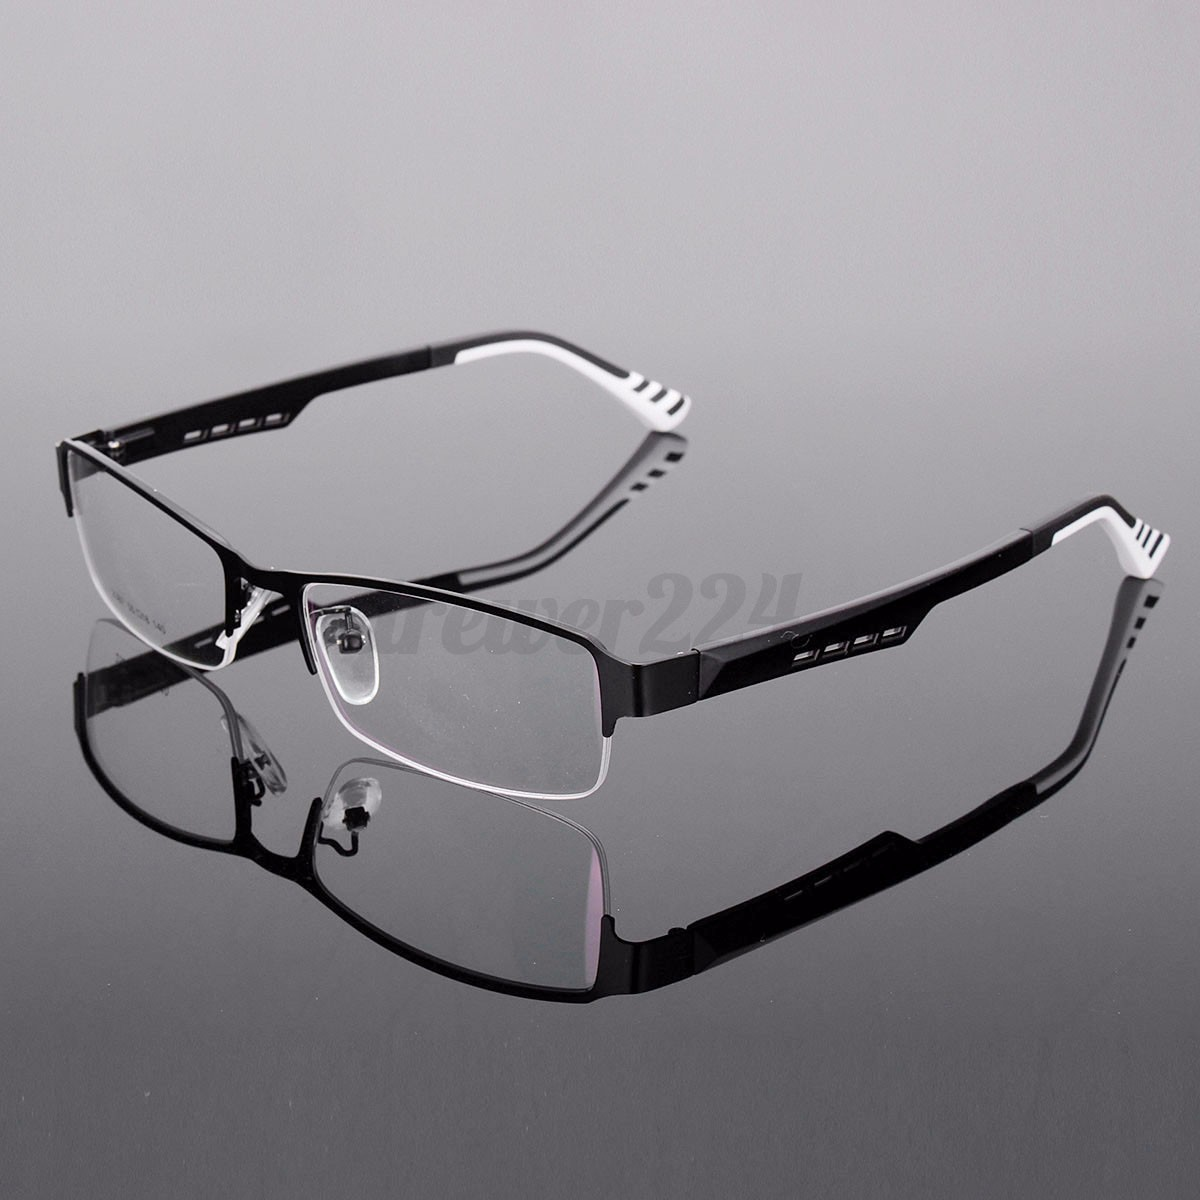 latest report global spectacle frame and mounting 2017 global and regional spectacle frame market research report forecasts 2022  latest report global cardiovascular application market research report - forecast .